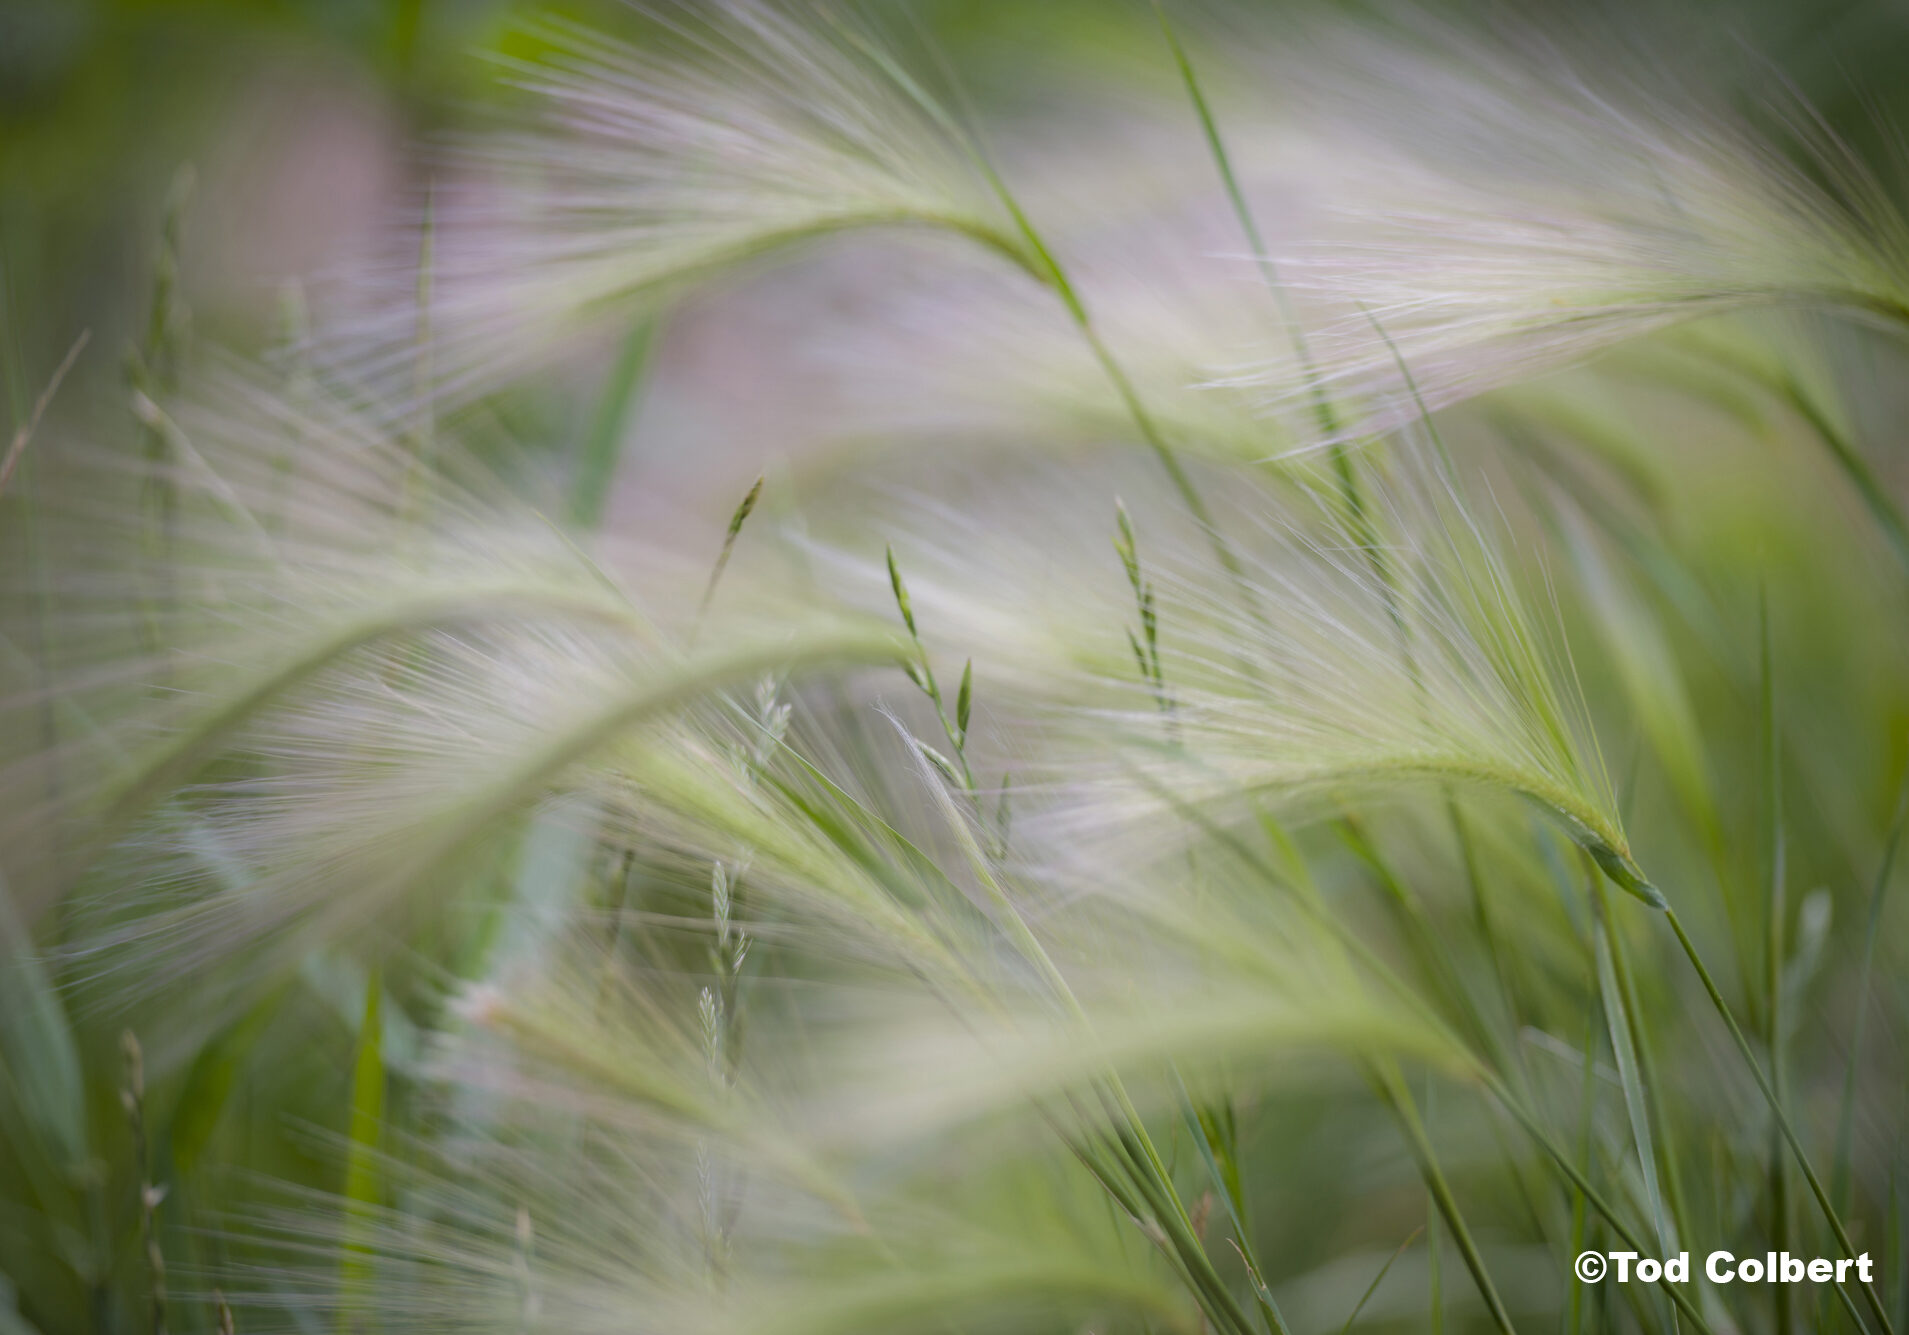 Tall grasses blowing in the wind